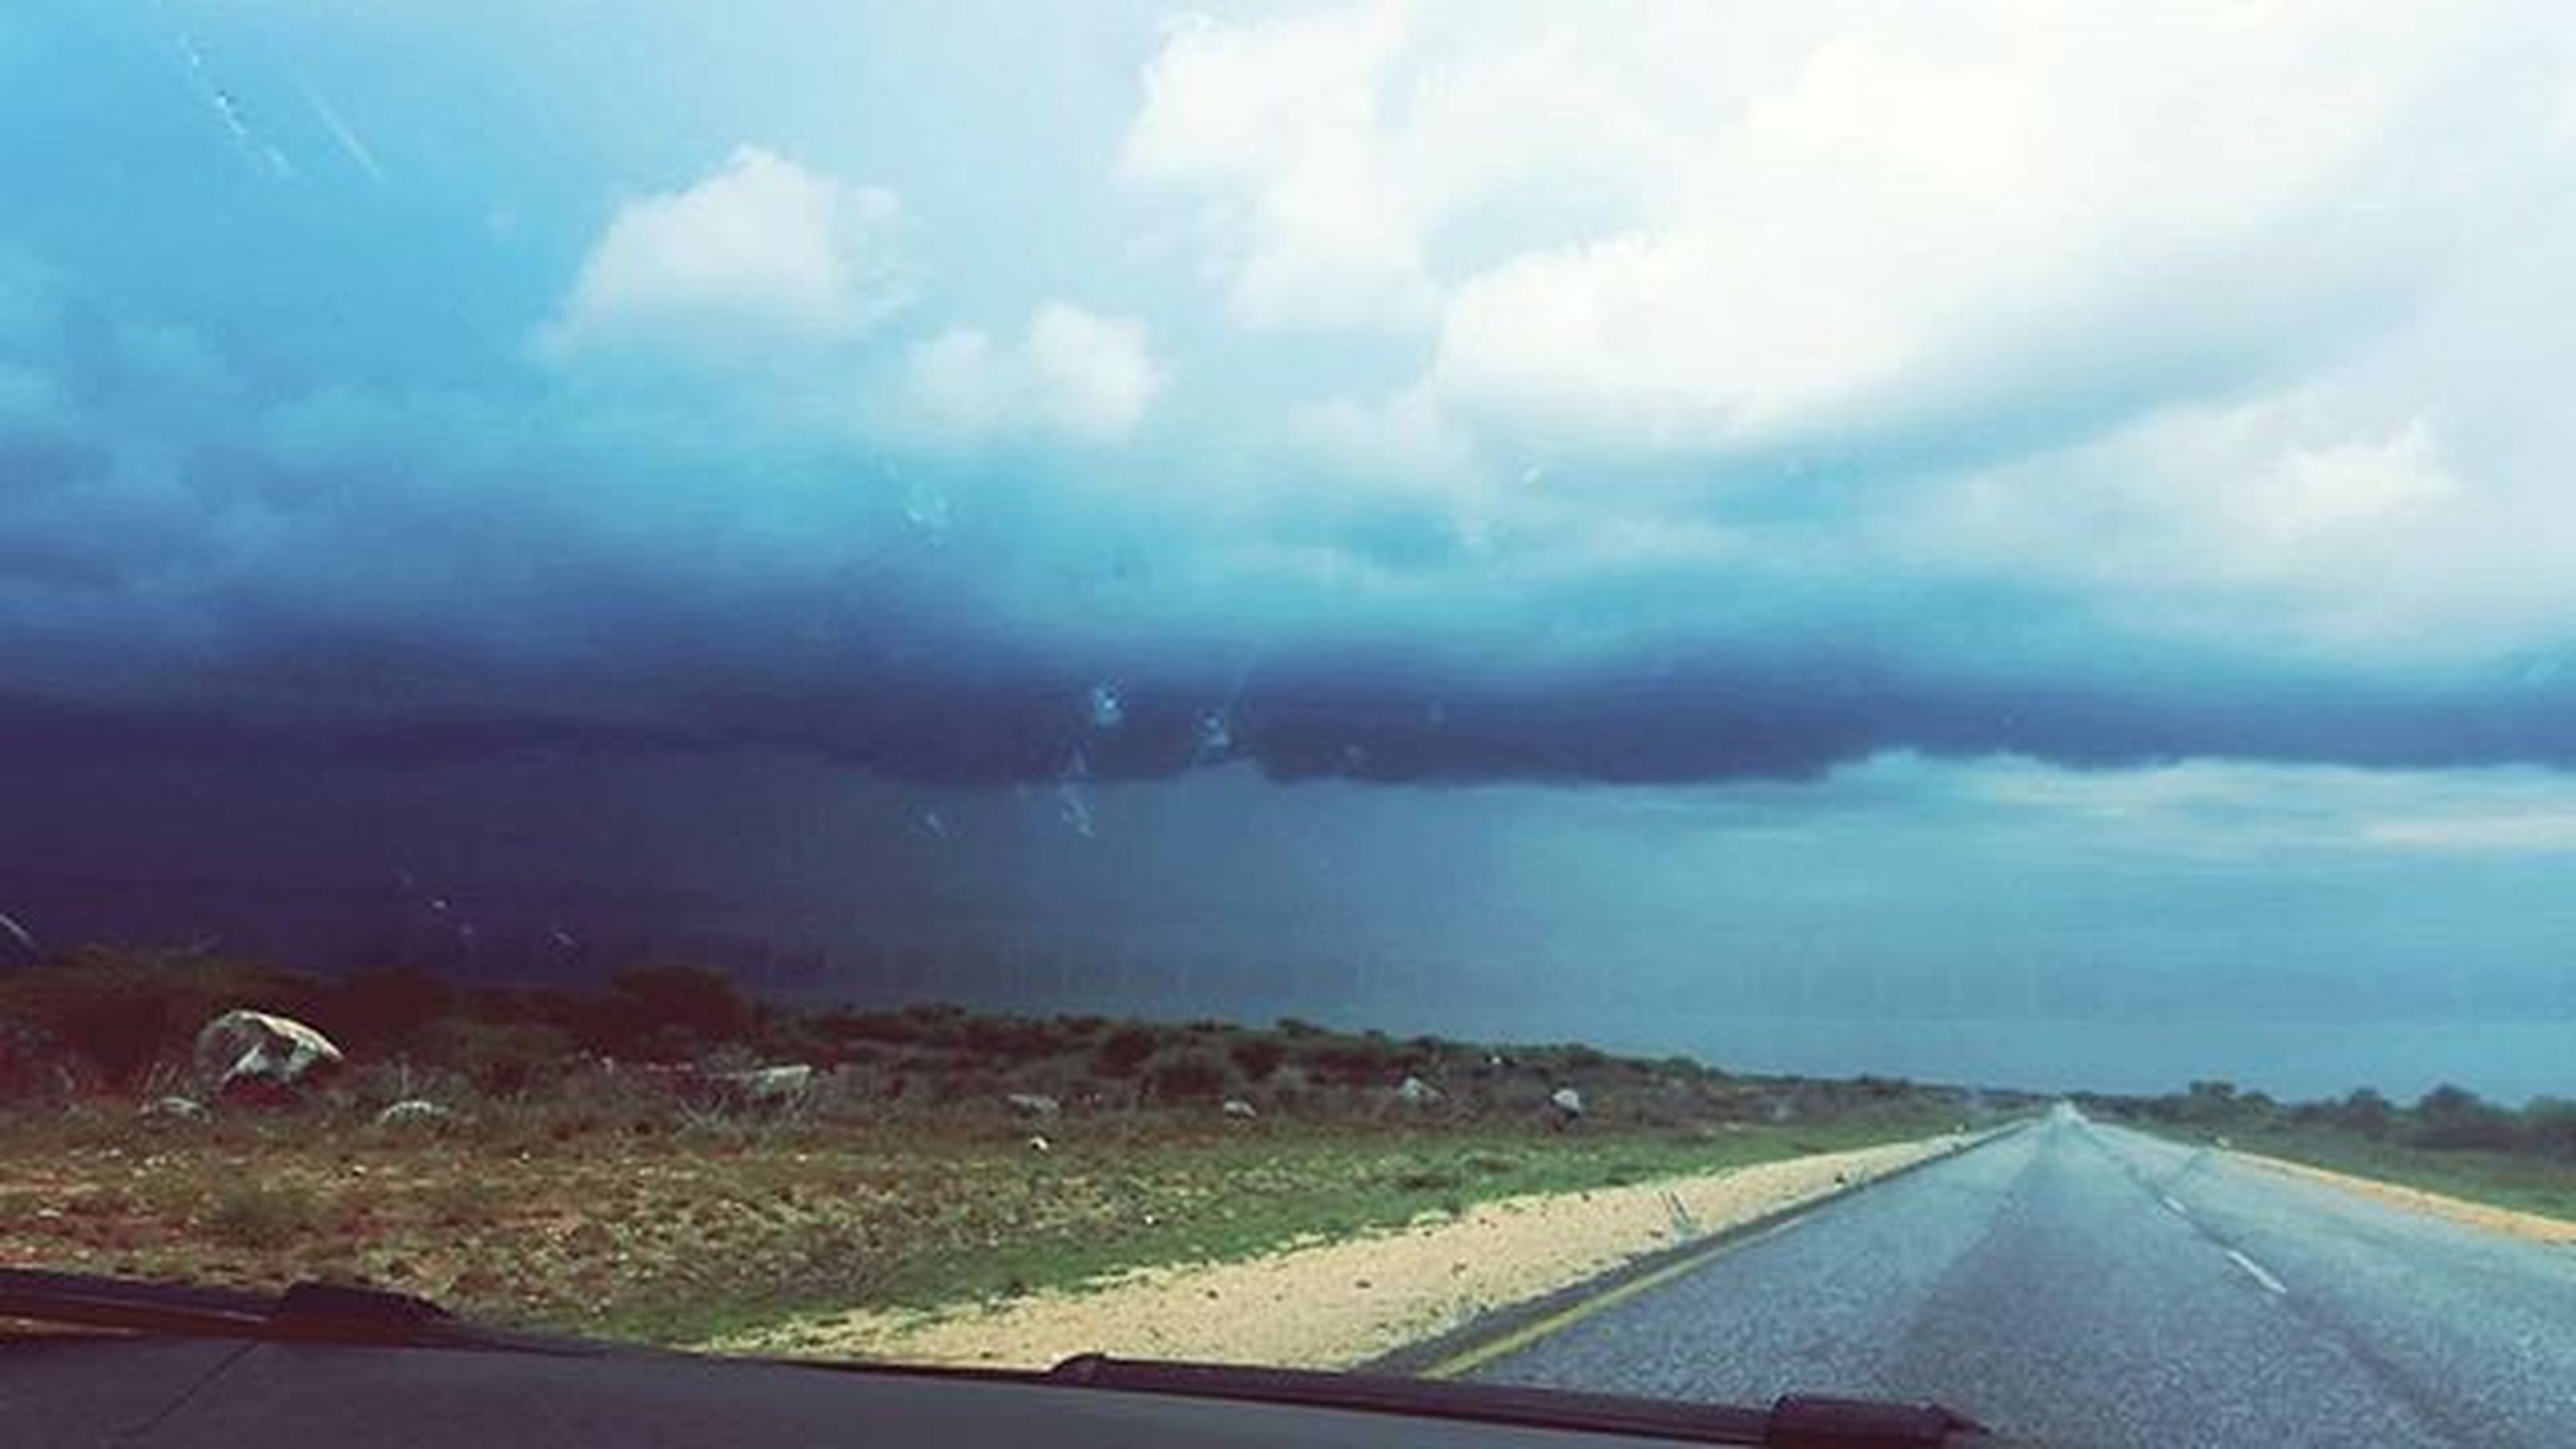 sky, cloud - sky, transportation, road, cloudy, landscape, the way forward, cloud, nature, weather, tranquil scene, scenics, tranquility, road marking, beauty in nature, overcast, field, country road, car, storm cloud